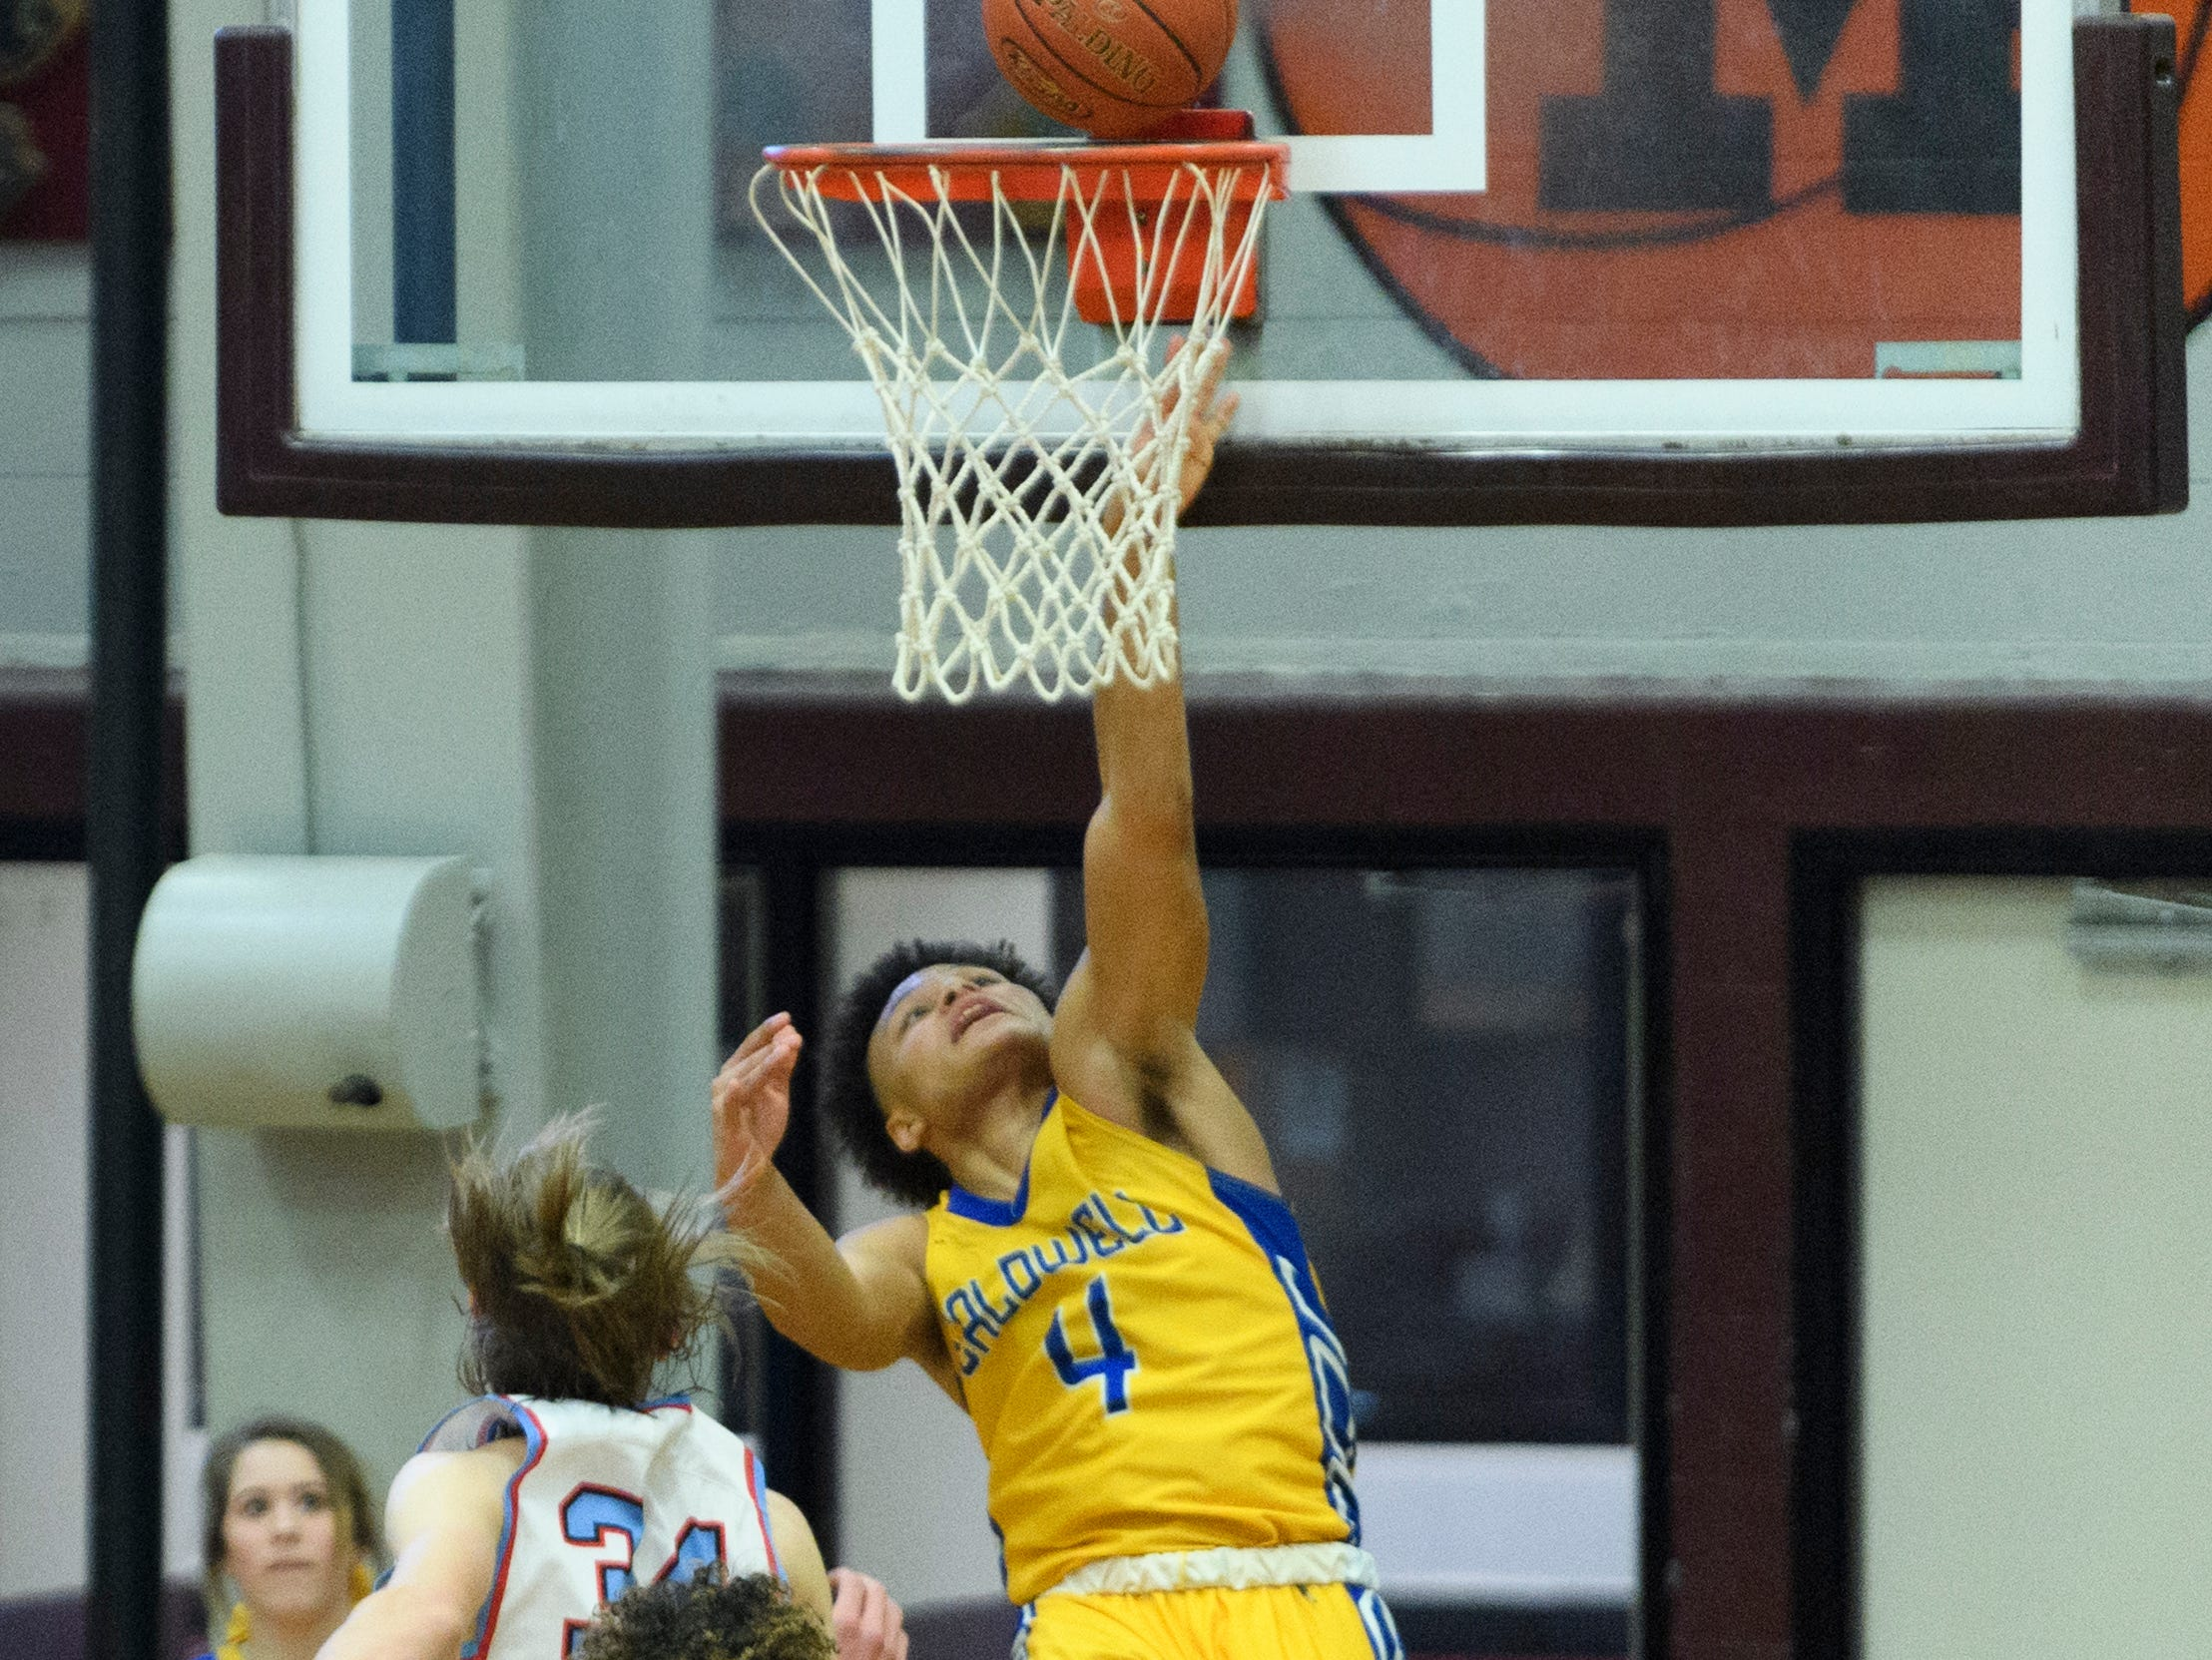 Caldwell County's Derrin Boyd (4) advances to the net during the Boys Second Region tournament against the Union County Braves at Madisonville-North Hopkins High School in Madisonville, Ky., Monday, Feb. 25, 2019. The Tigers defeated the Braves 67-64 to advance to Friday's second region semifinal against University Heights Academy.